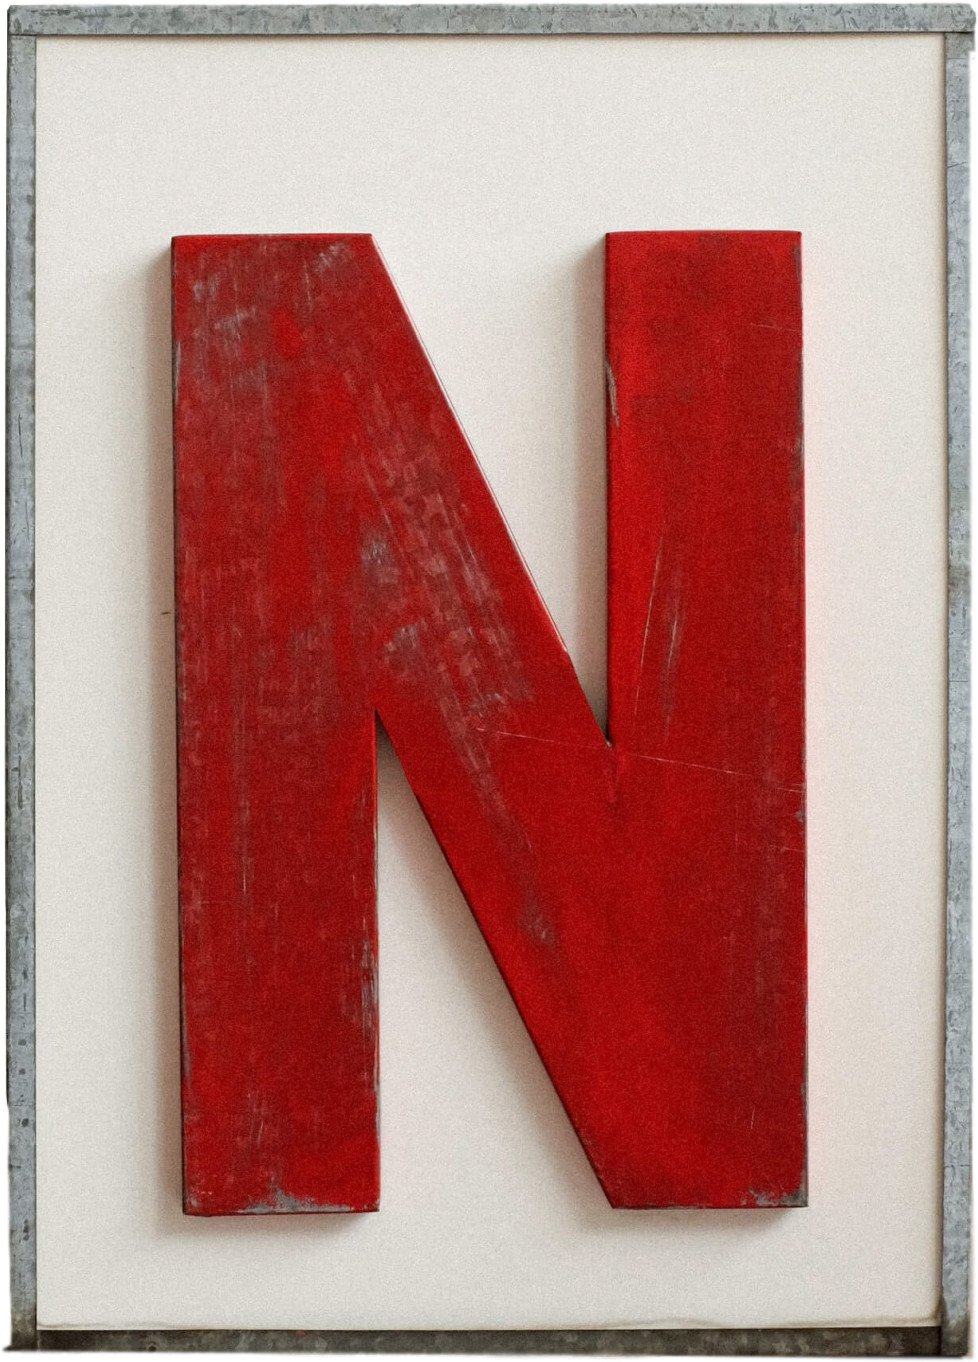 Vintage Luminous Metal Letter, Czechoslovakia, 1980s